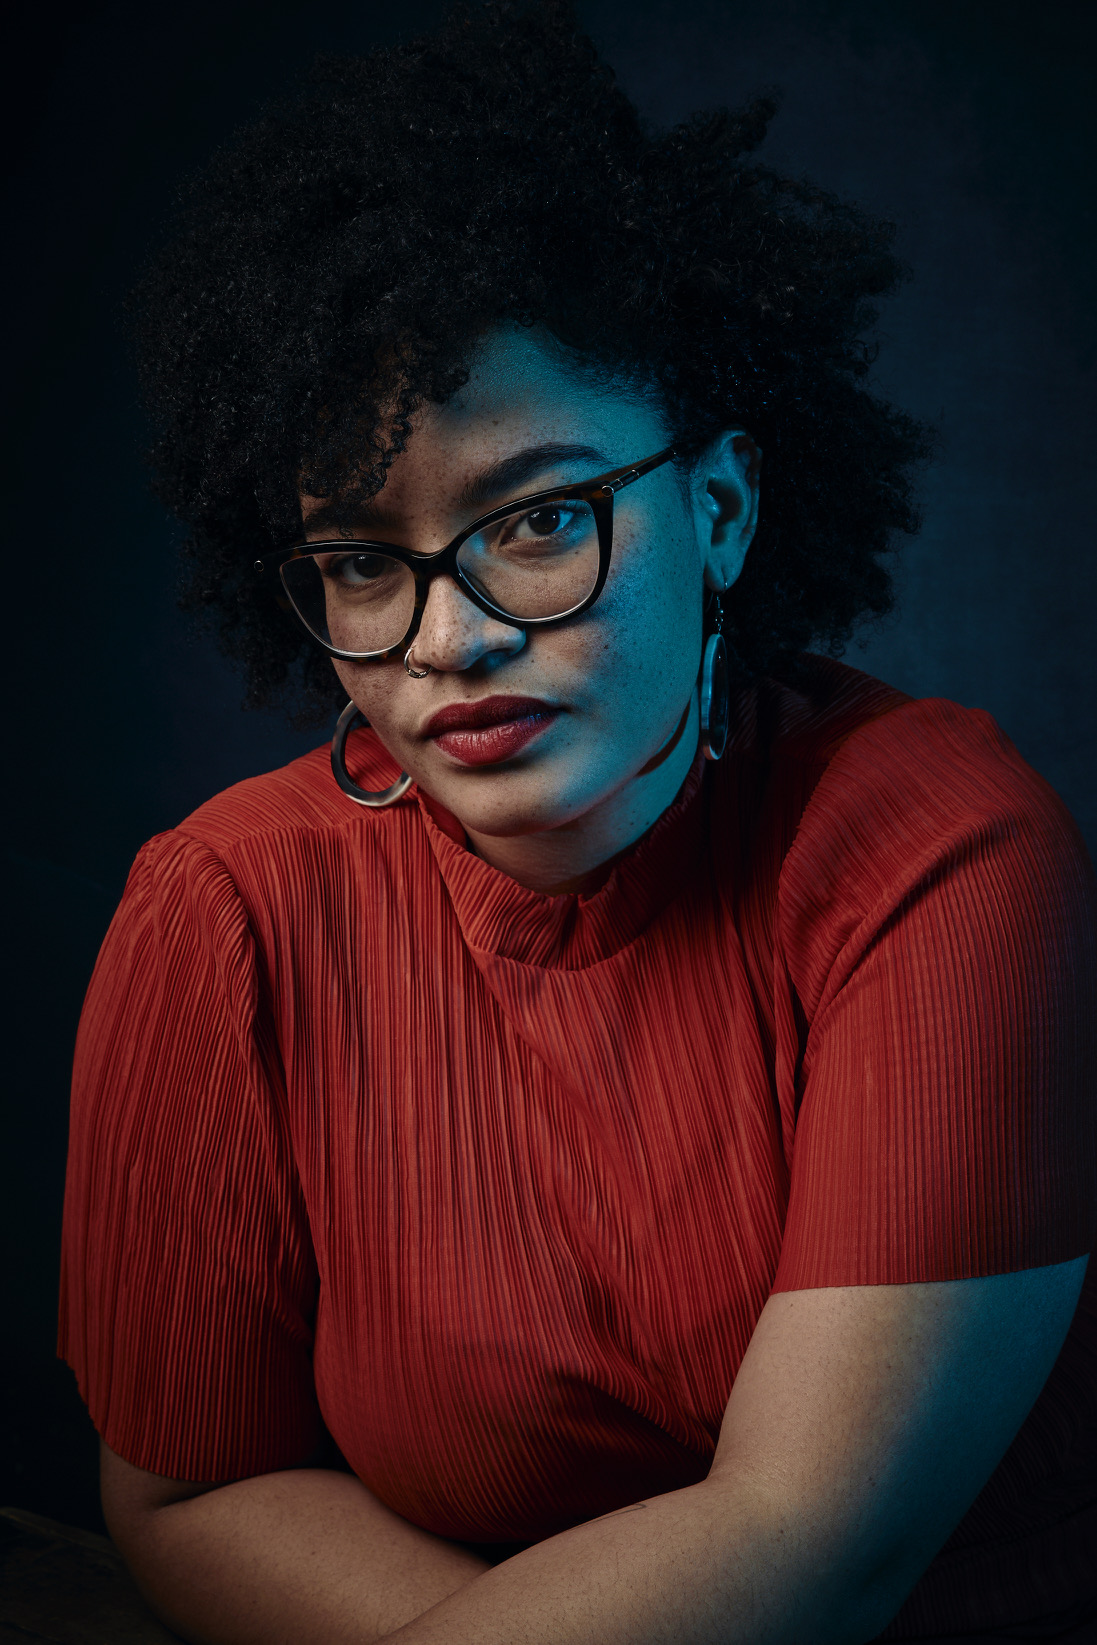 AMA JOSEPHINE B. JOHNSTONE NAMED AS 2020-21 KEITH HARING FELLOW IN ART AND ACTIVISM AT BARD COLLEGE